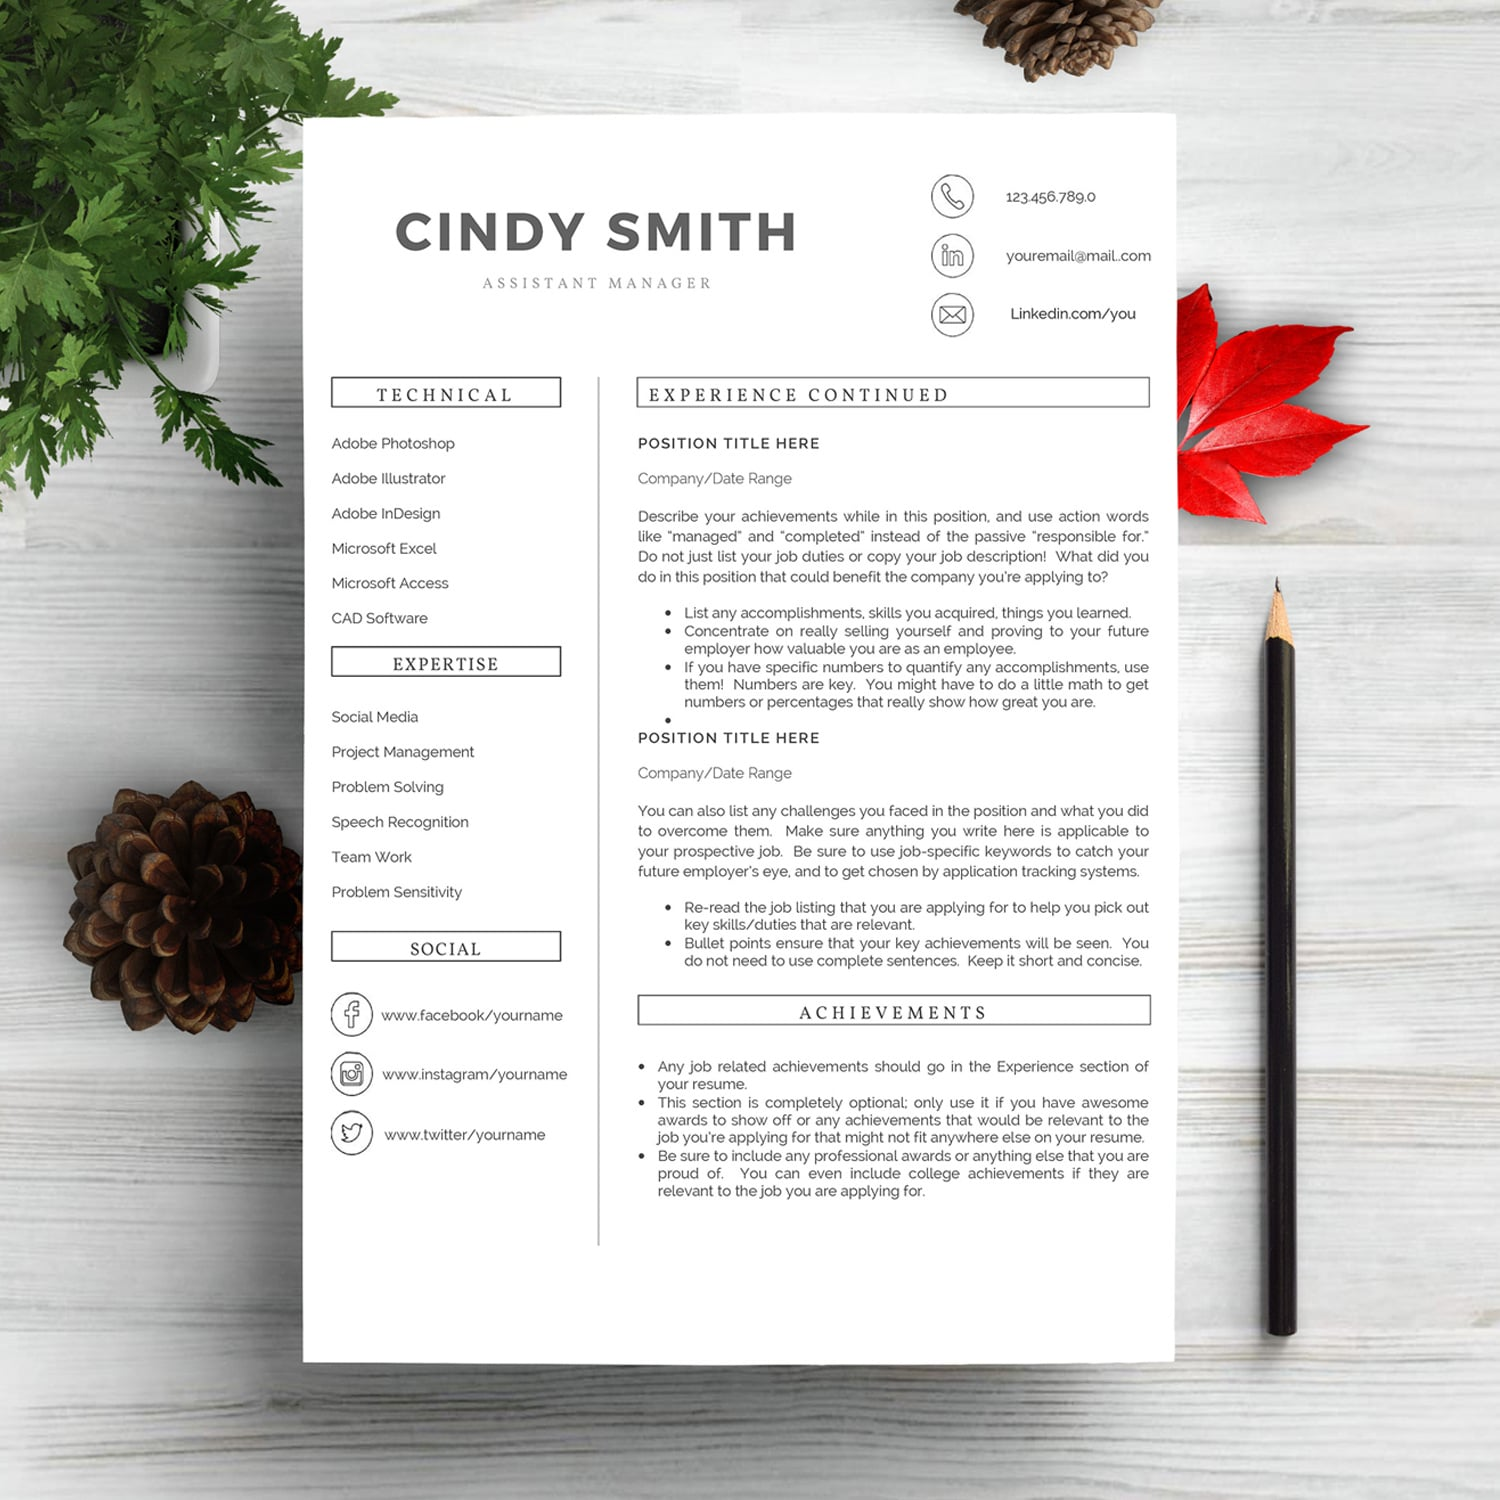 Feminine Chic Resume Template